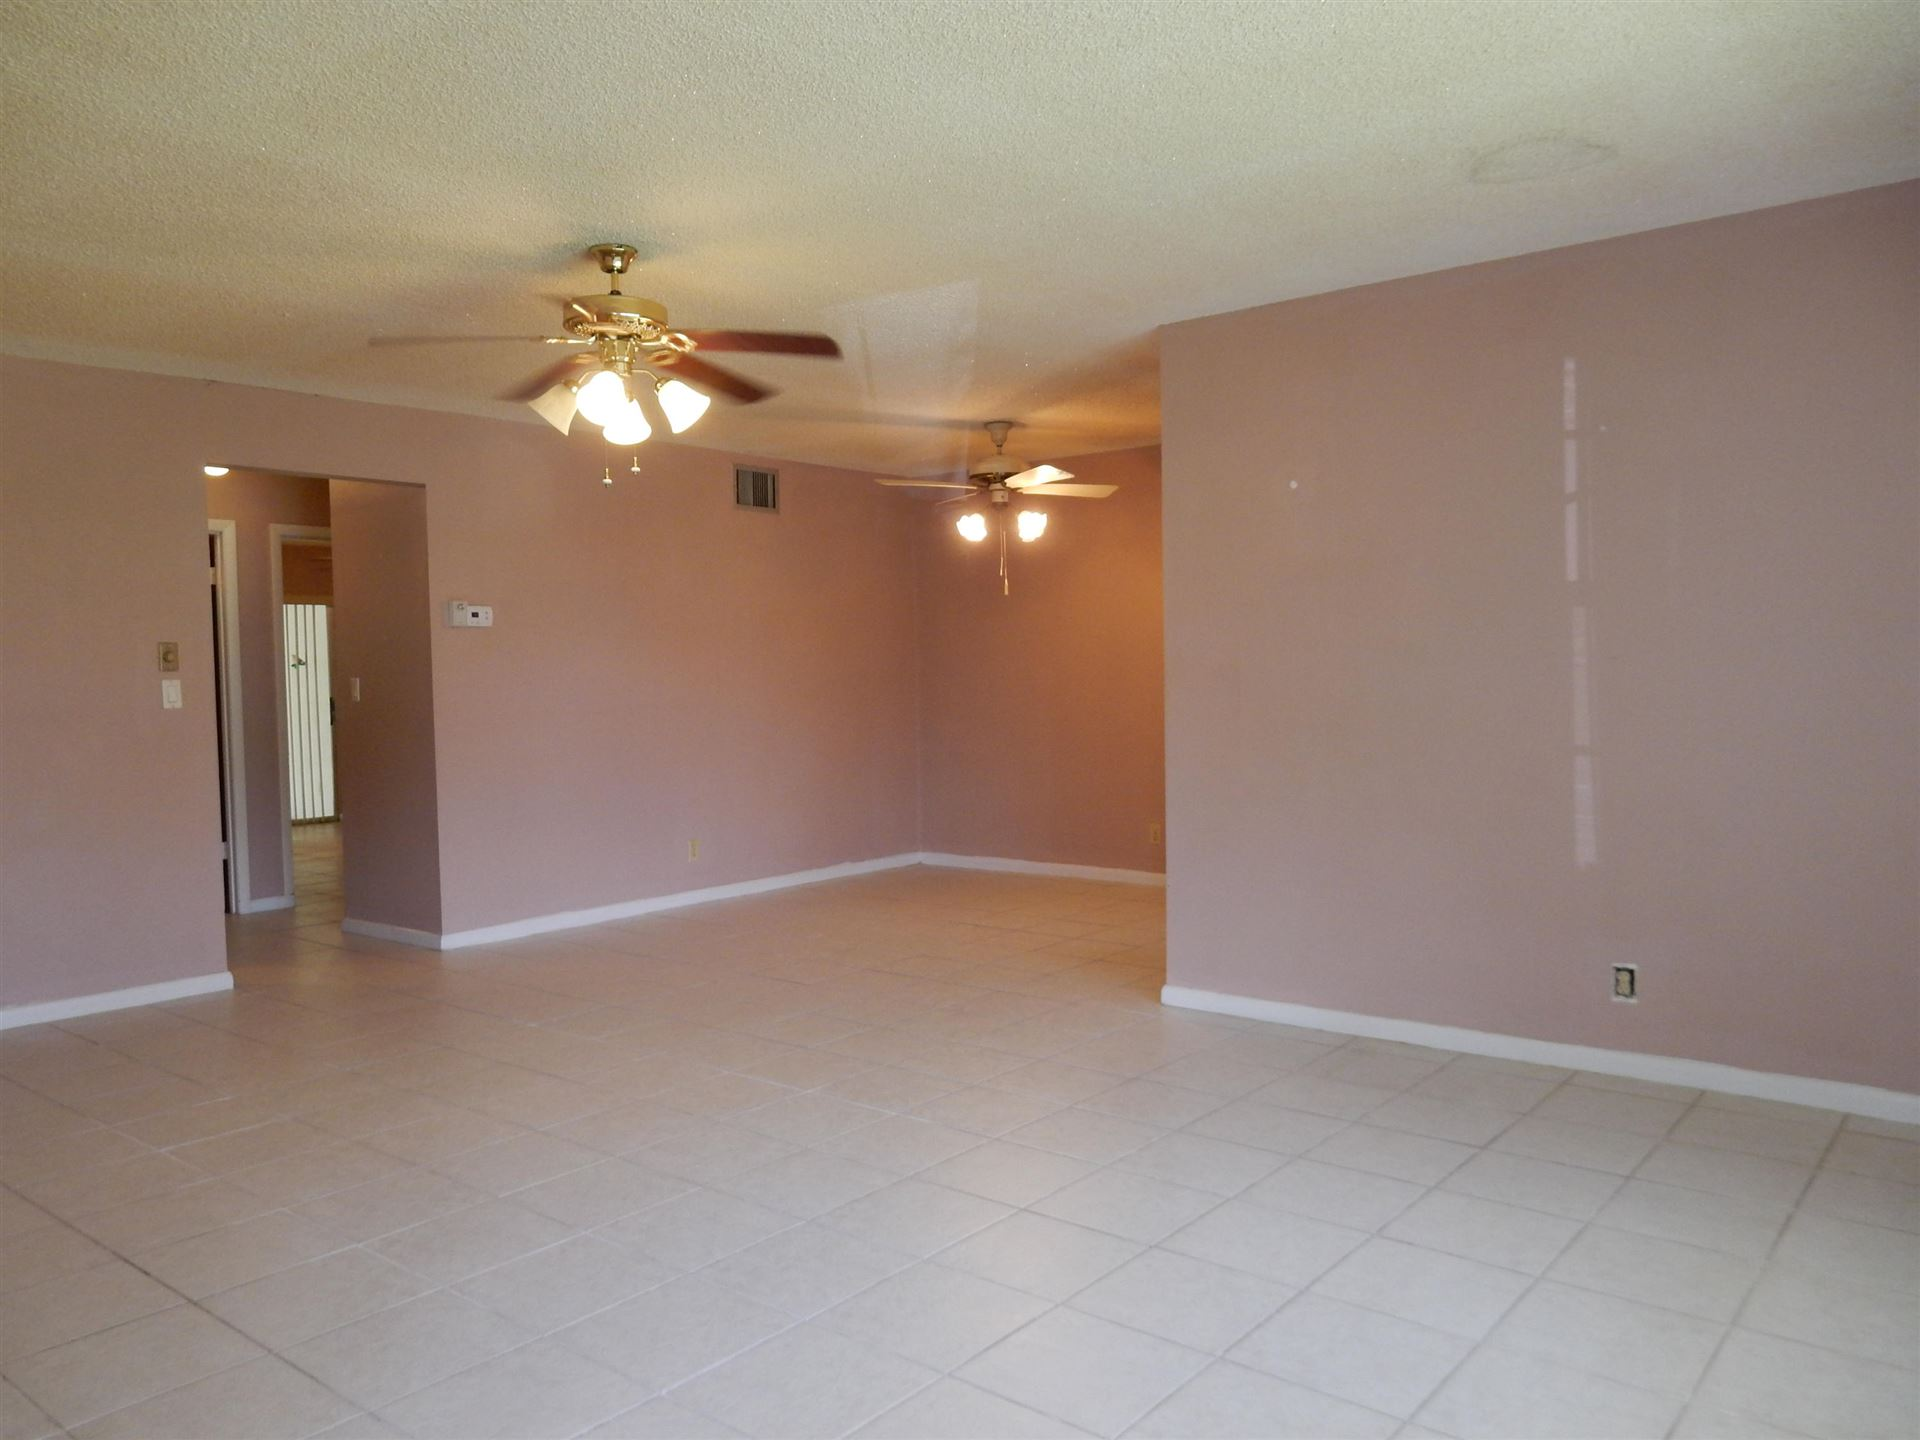 Photo of 111 Lakes End Drive #B, Fort Pierce, FL 34982 (MLS # RX-10669121)